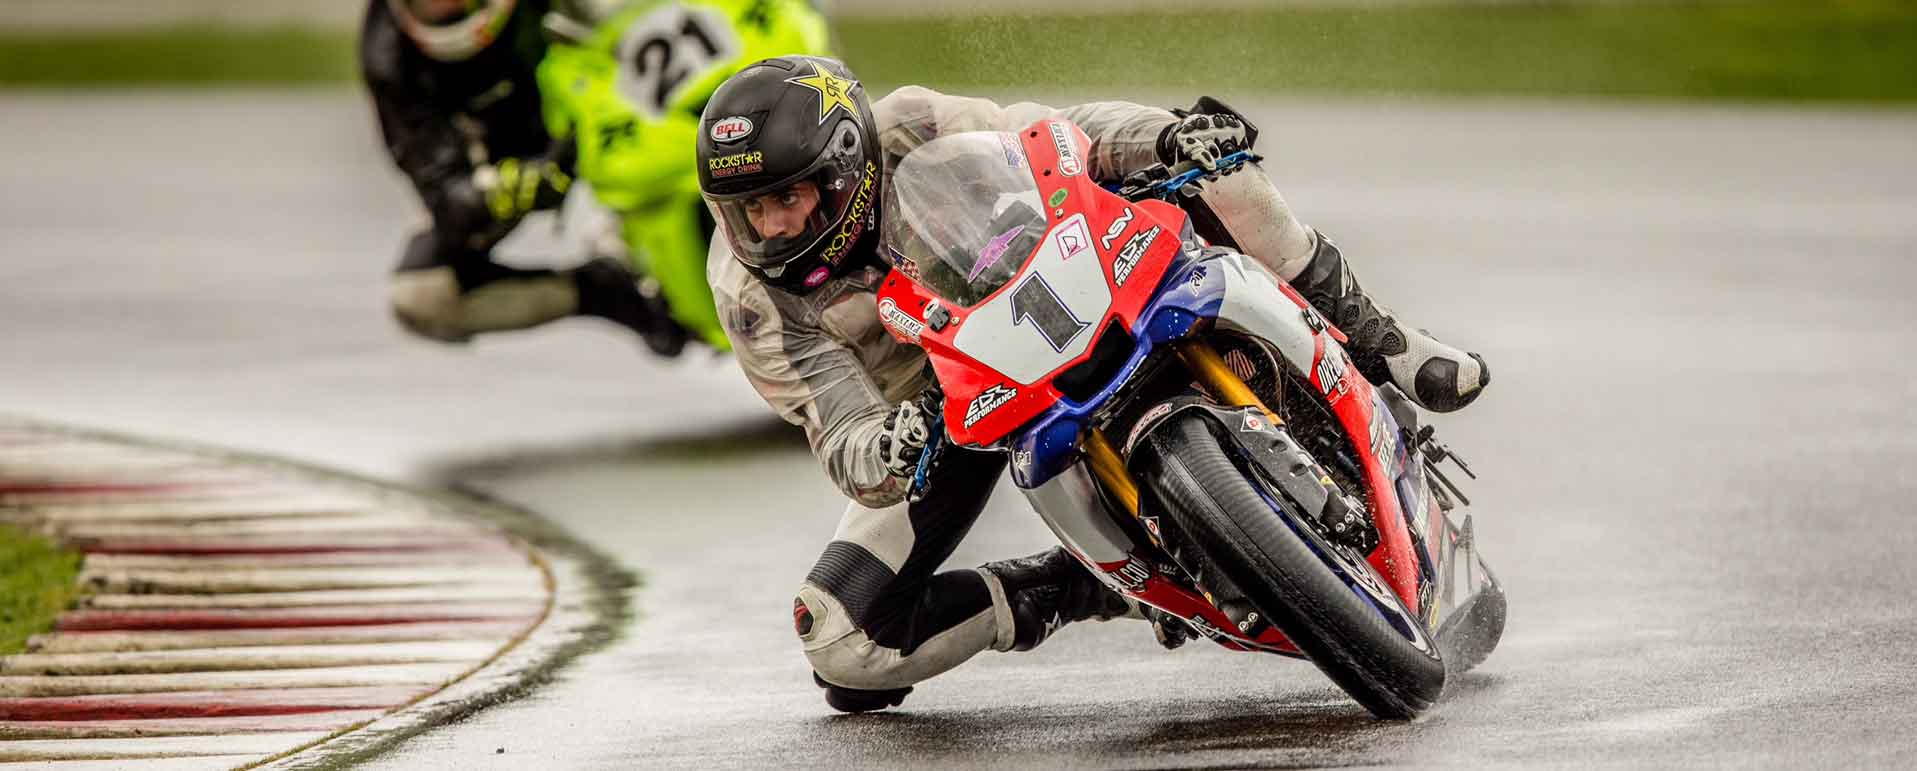 Andy DiBrino leaning hard into a turn at OMRRA round 1 at PIR in wet rainy conditions